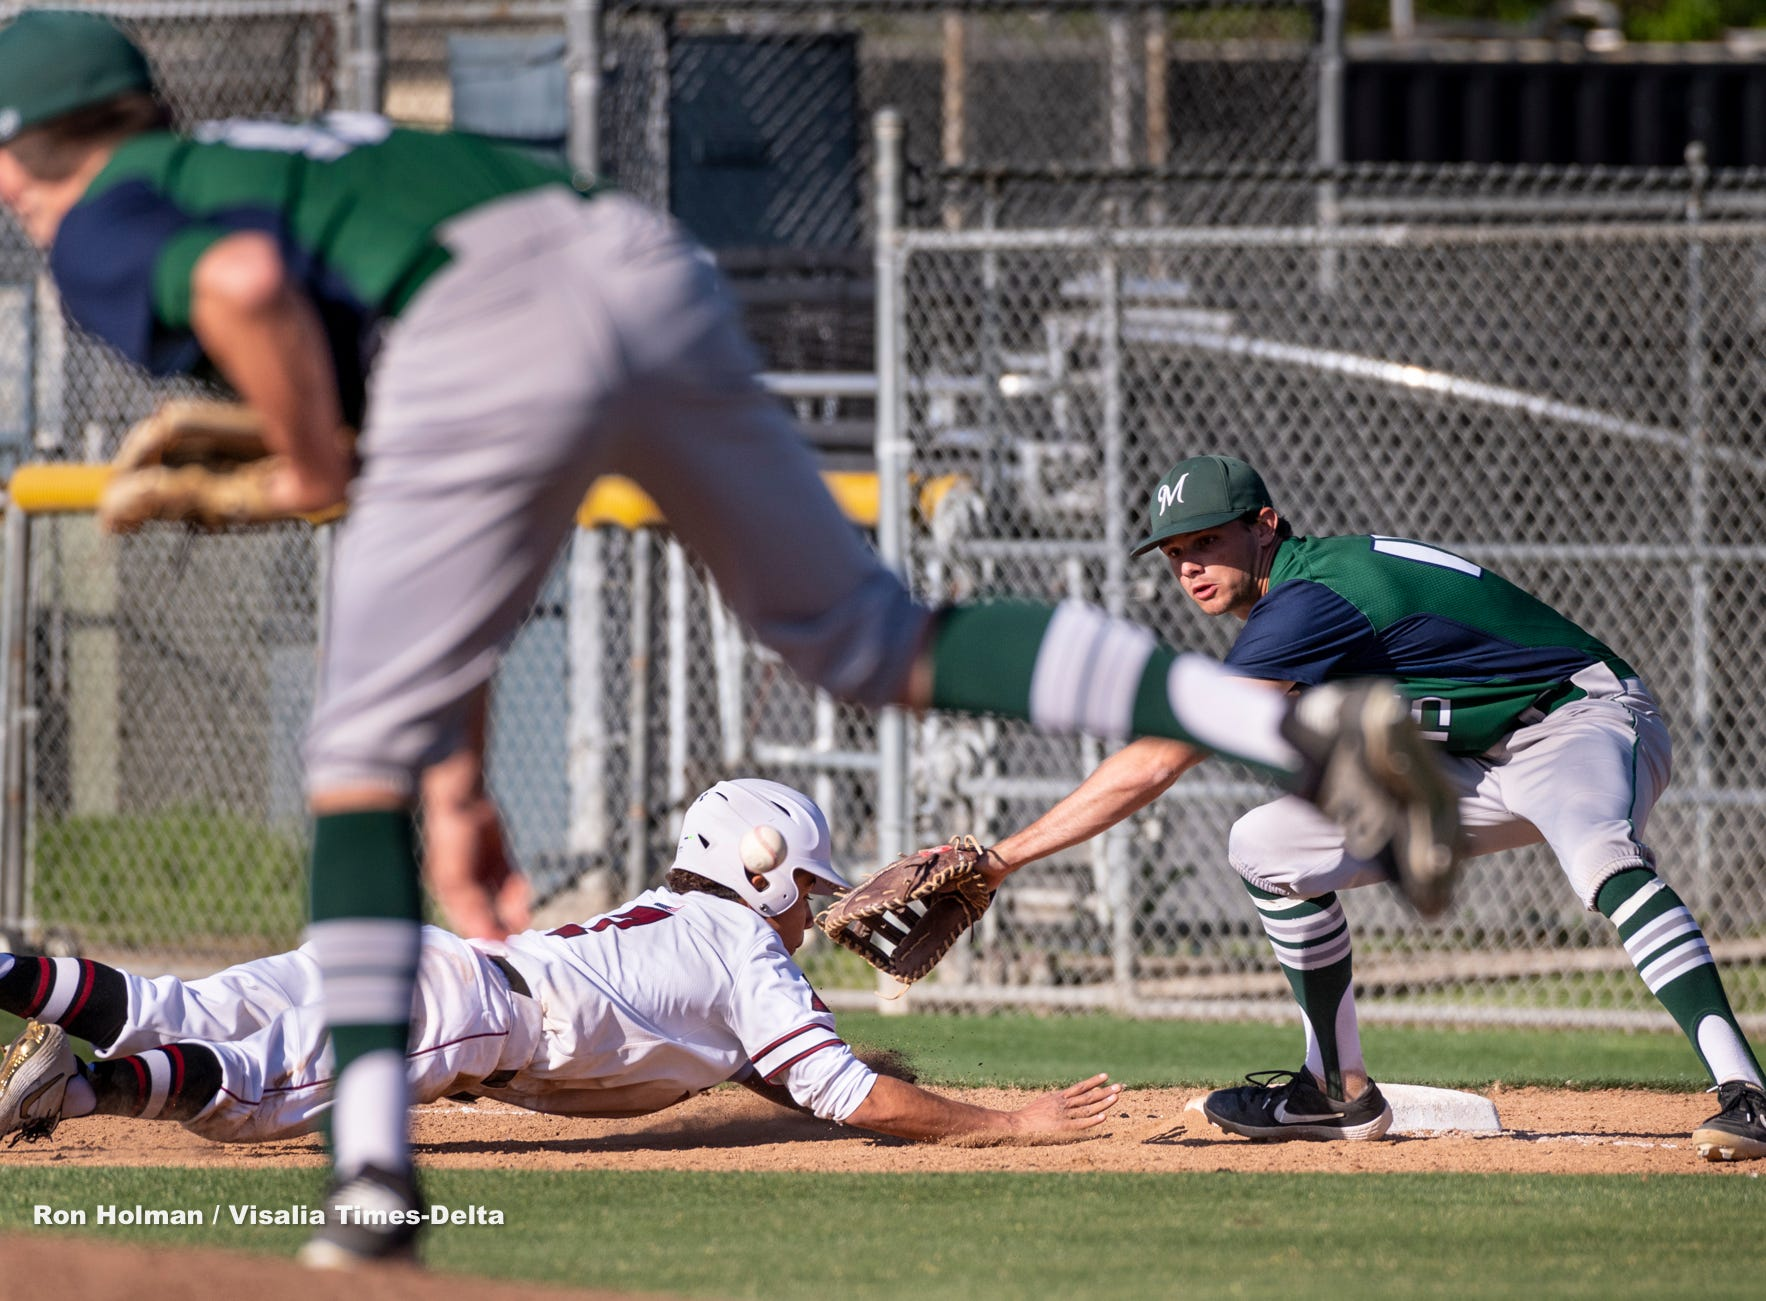 Mt. Whitney's Rolando Luna gets safely back to first during a pick-off attempt by El Diamante pitcher Riley Creech and Parker Boswell on Wednesday, April 10, 2019.